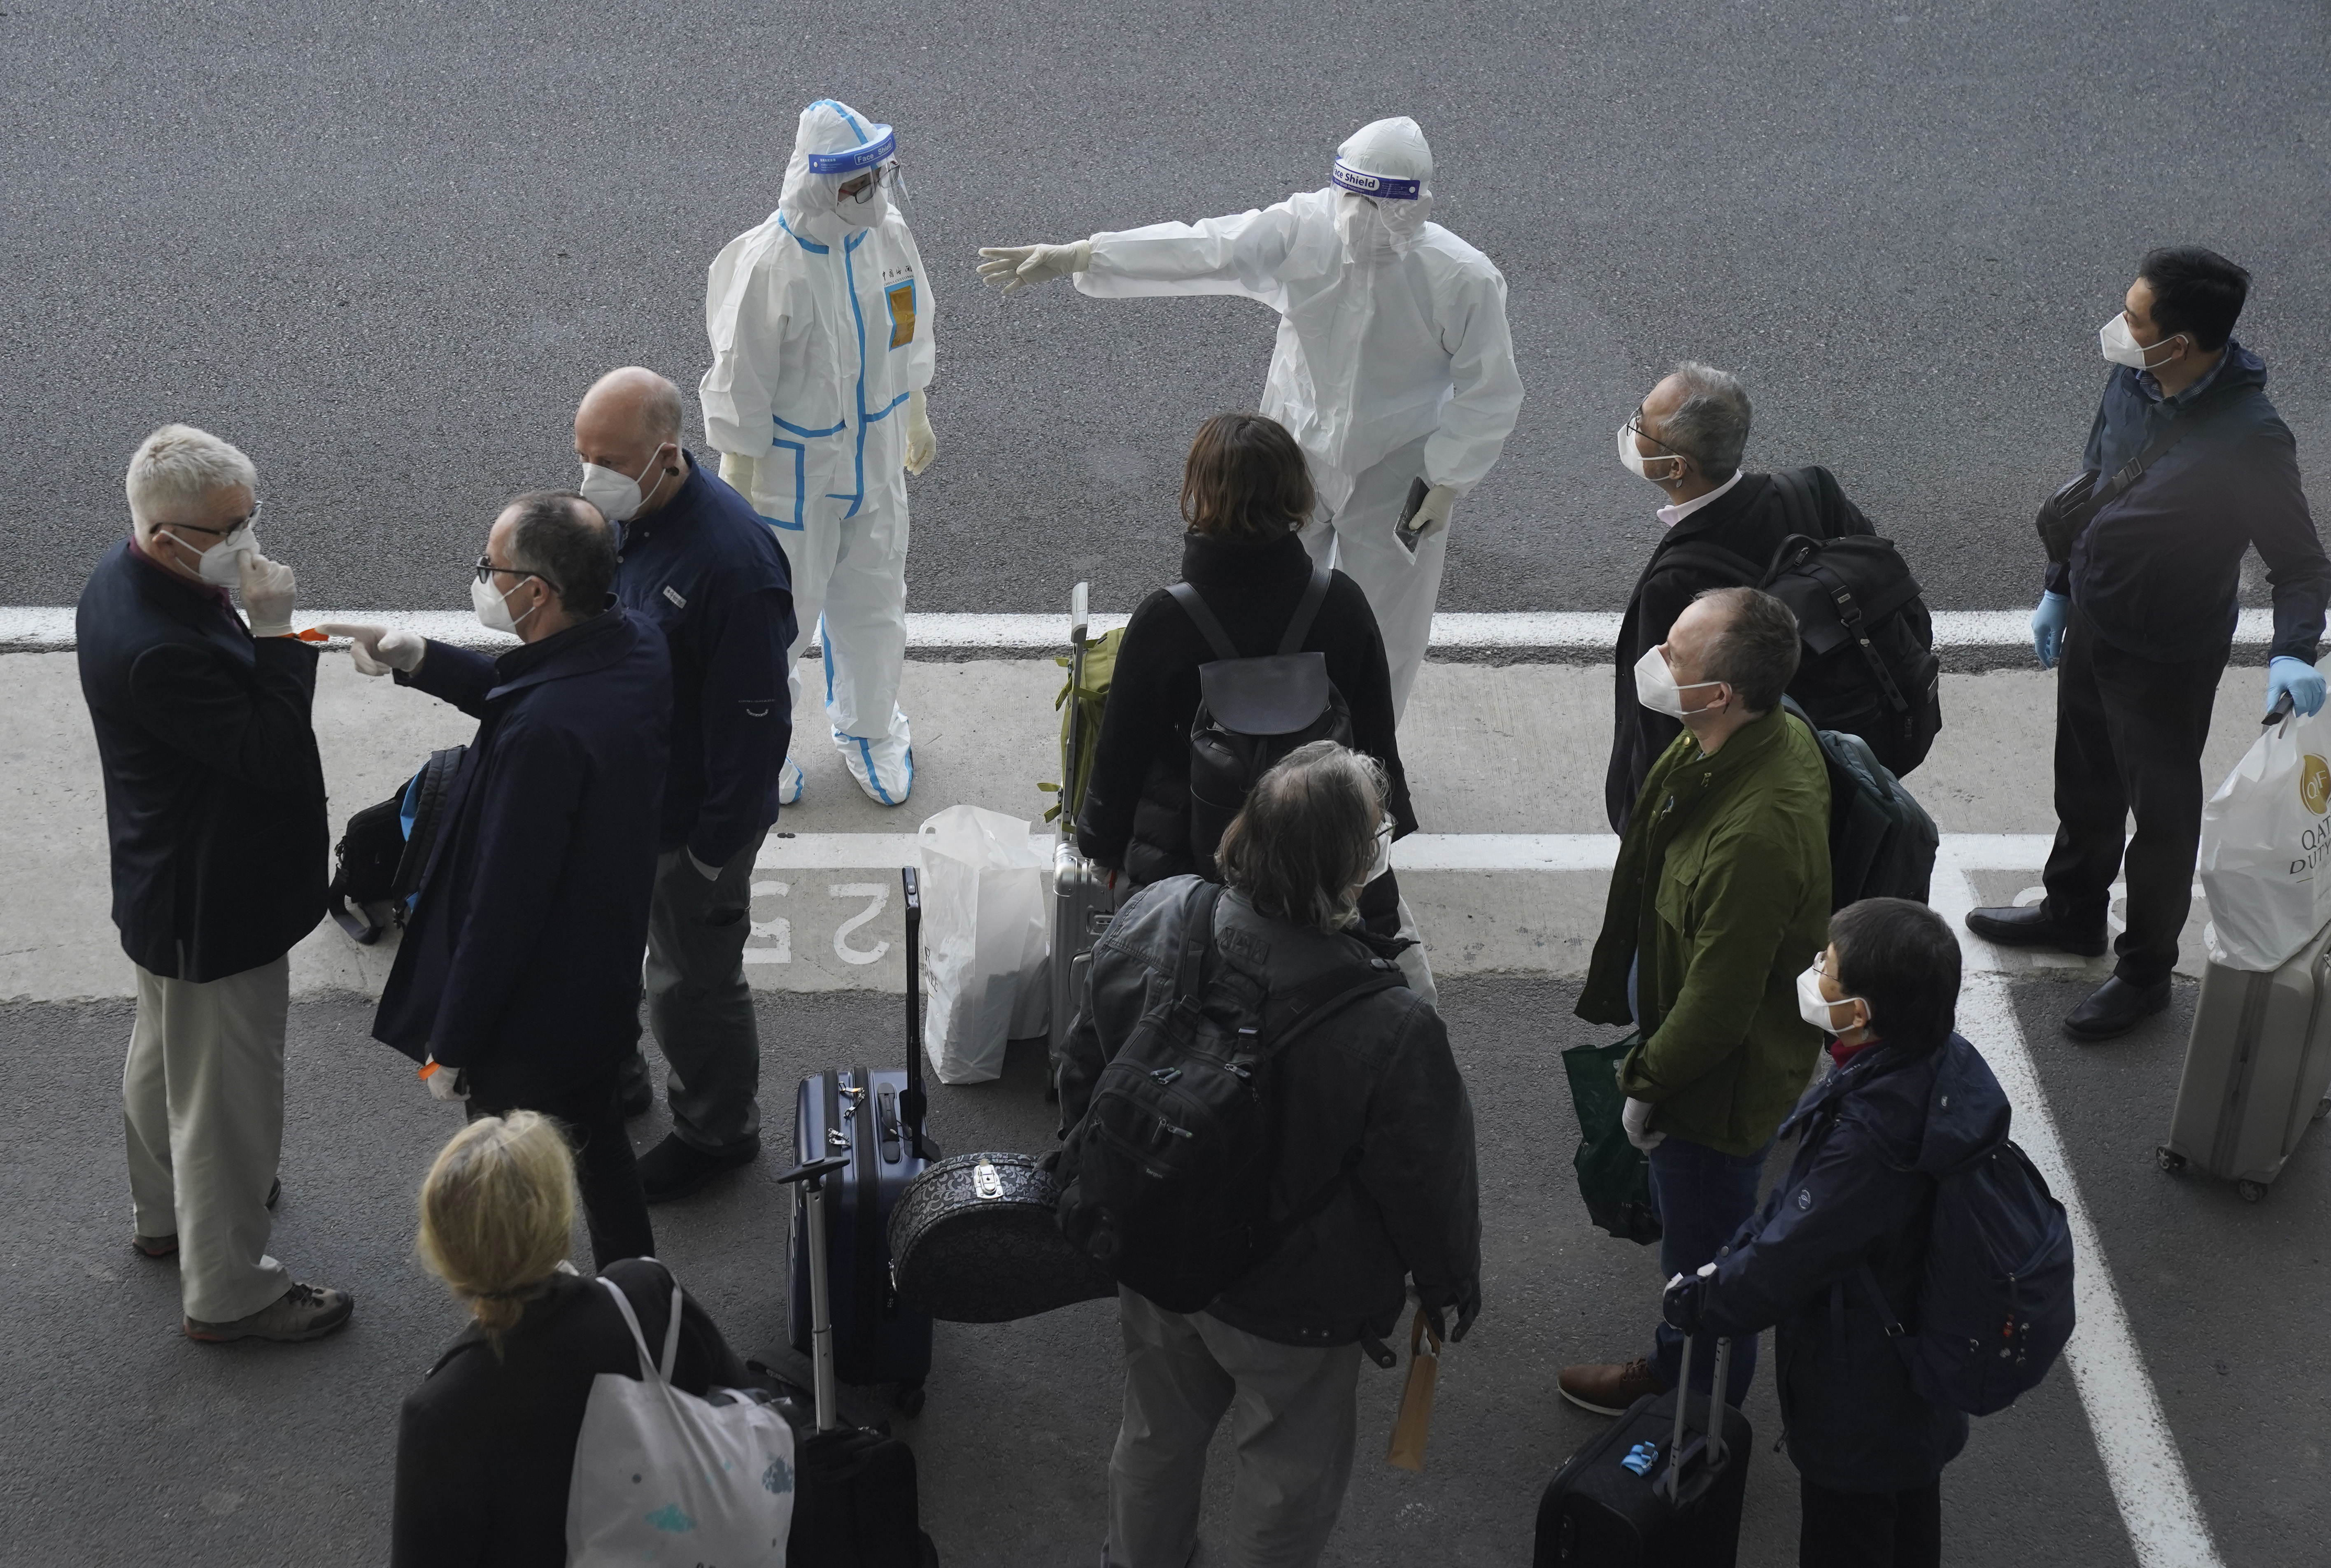 A worker in protective coverings directs members of the World Health Organization (WHO) team on their arrival at the airport in Wuhan in central China's Hubei province on Thursday, Jan. 14, 2021.